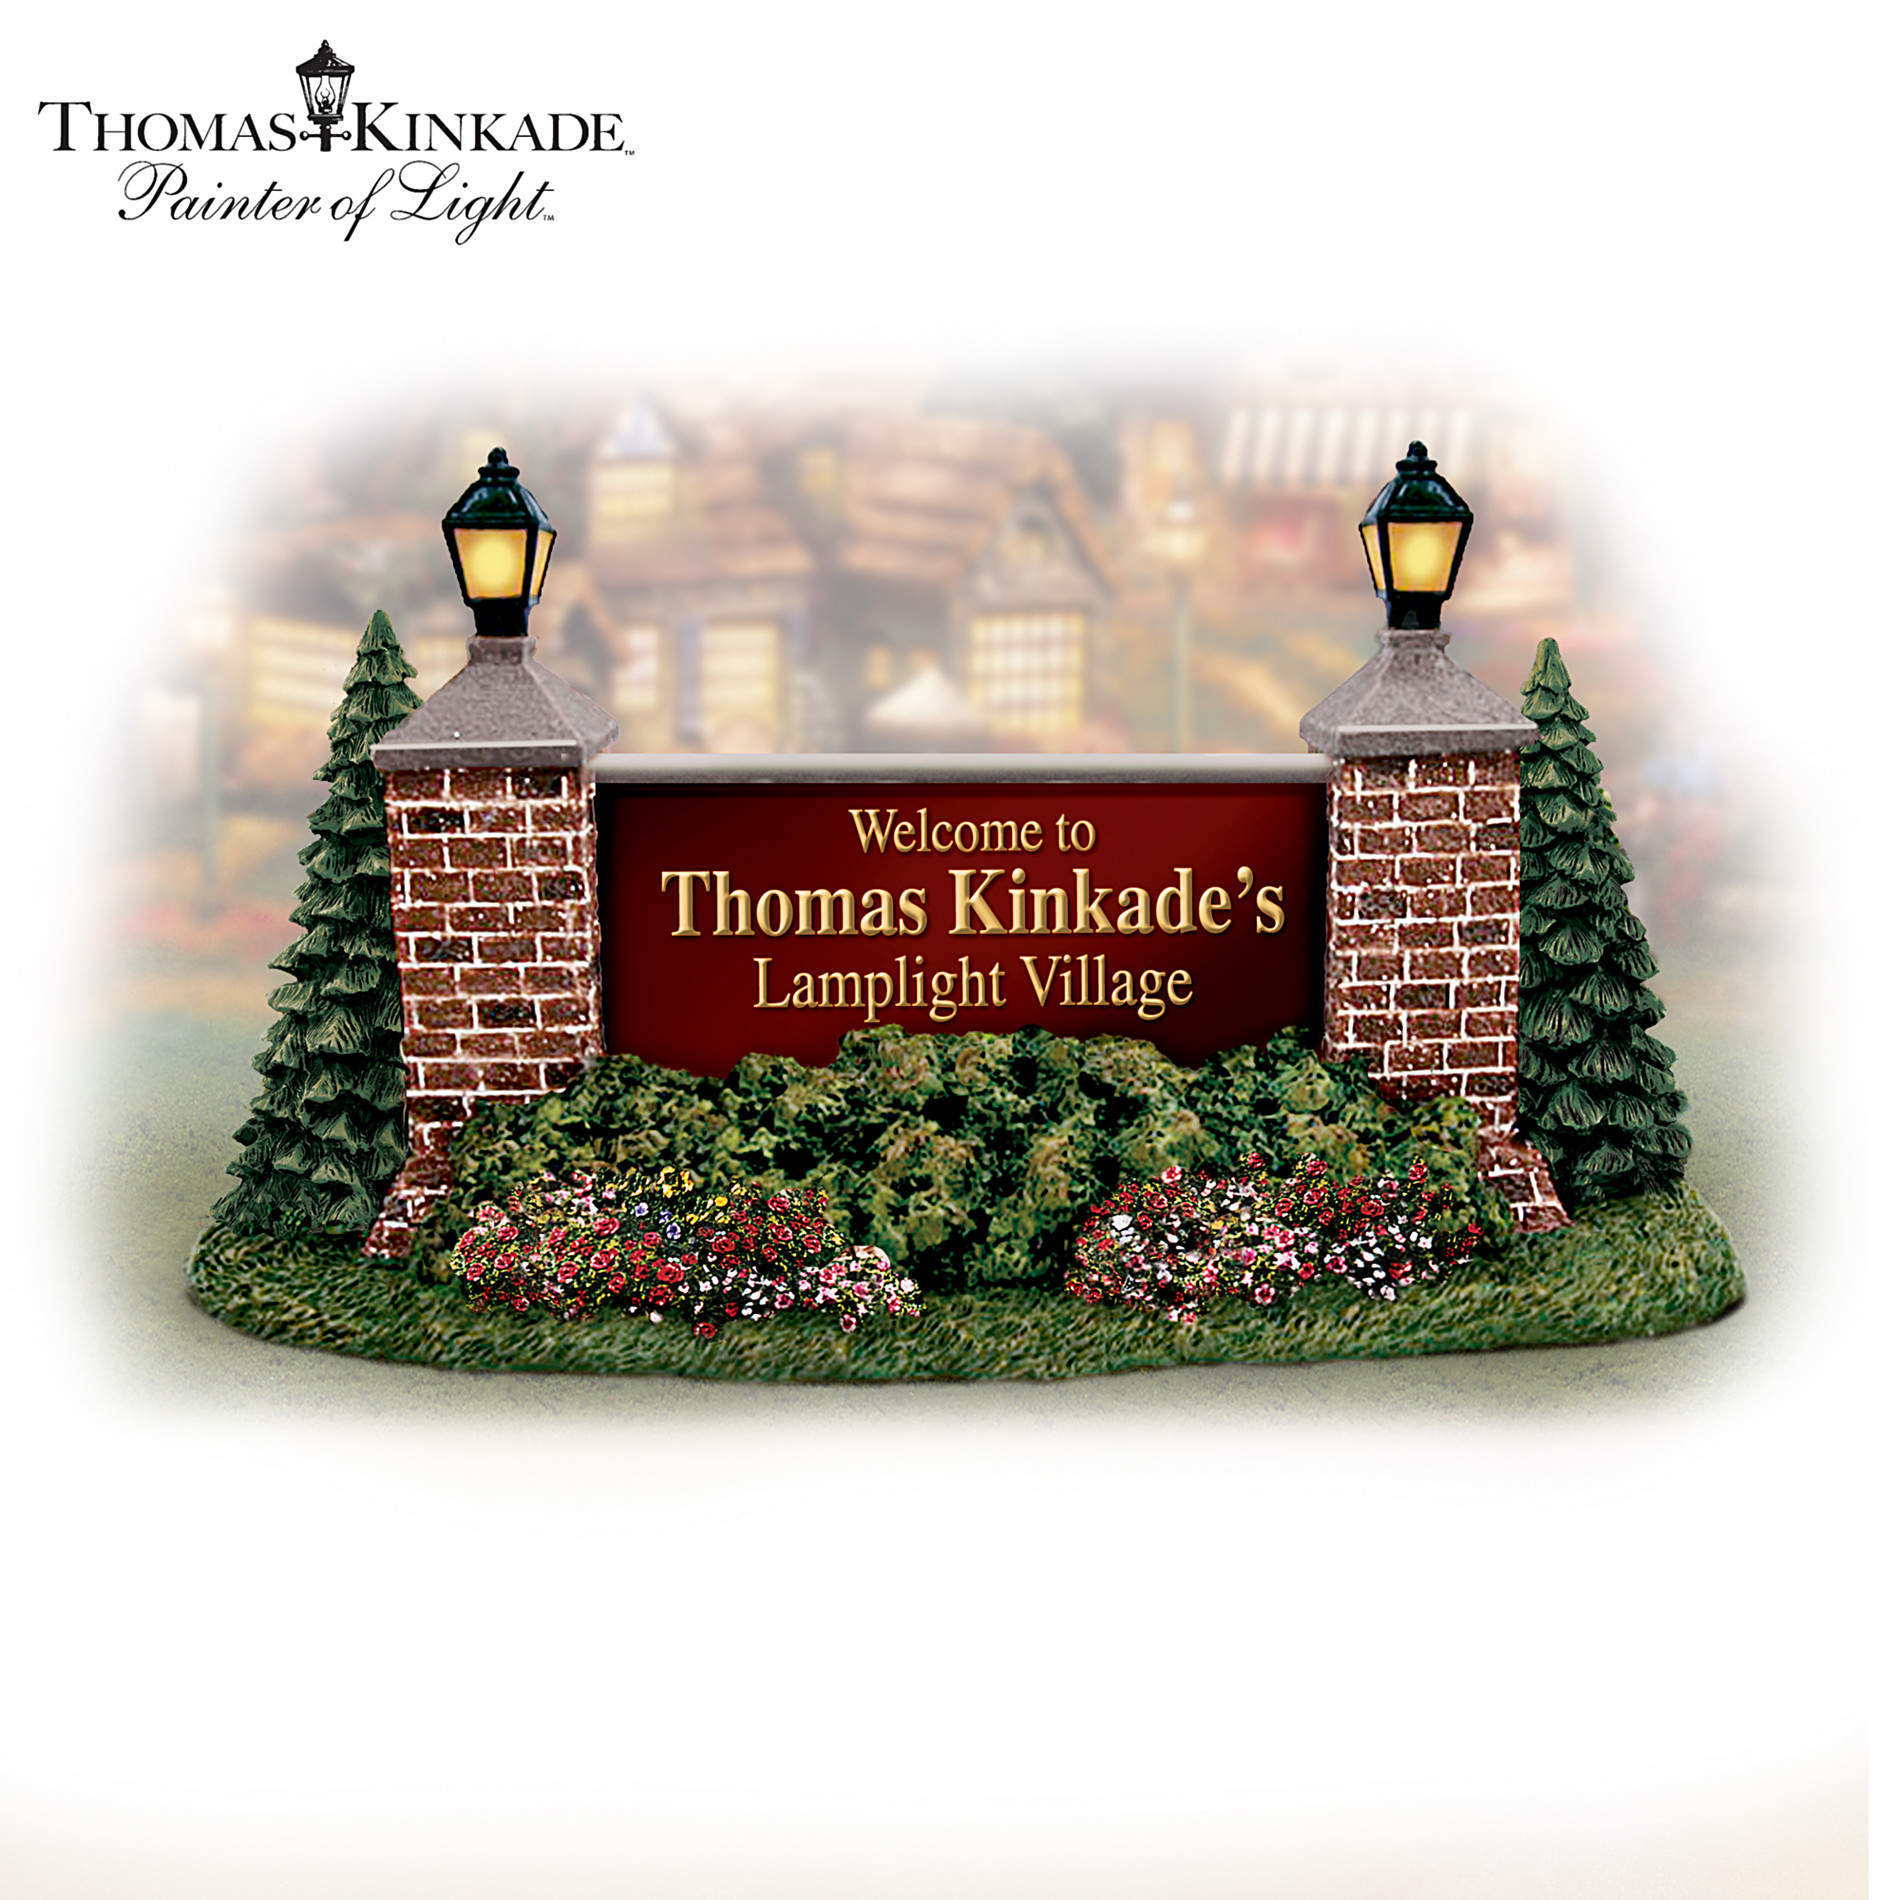 Hawthorne Village Thomas Kinkade Lamplight Greetings Village Accessory at Sears.com